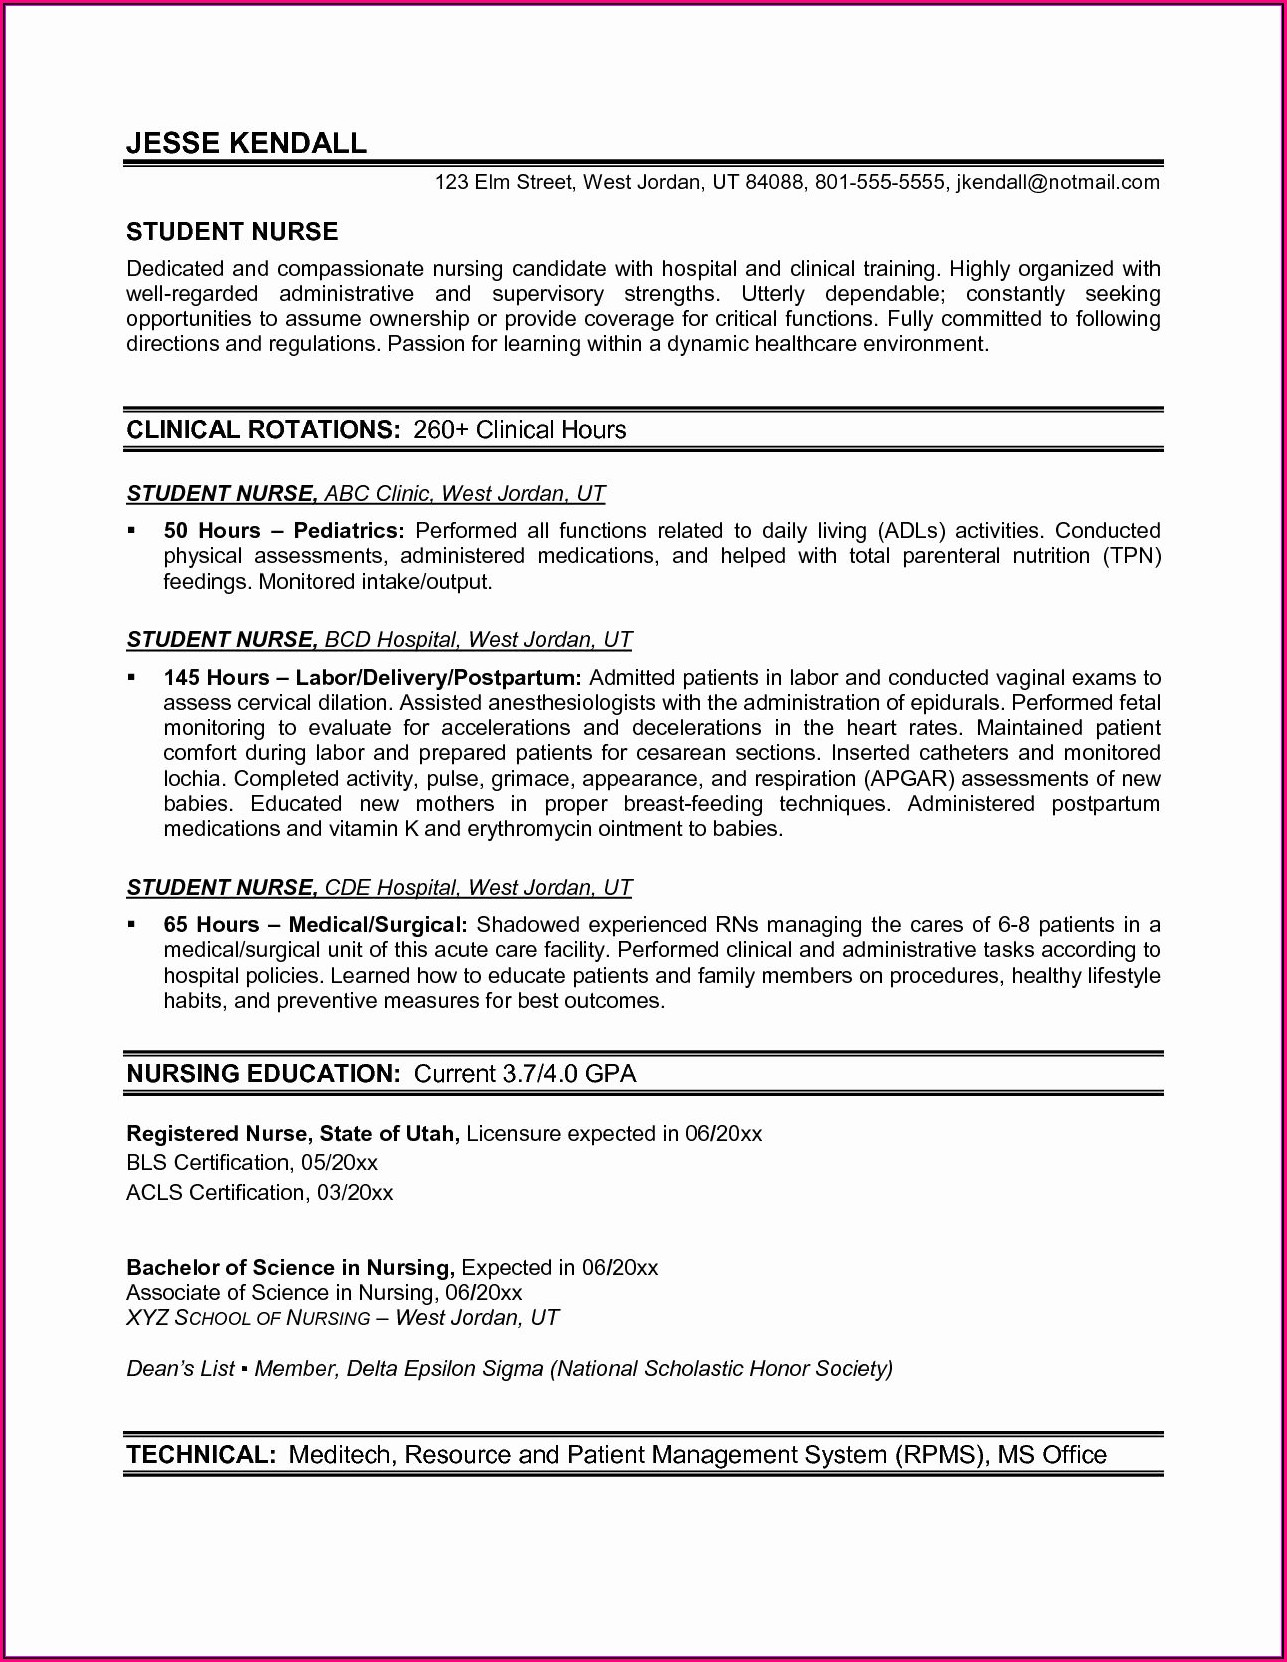 Resume Example For Registered Nurse